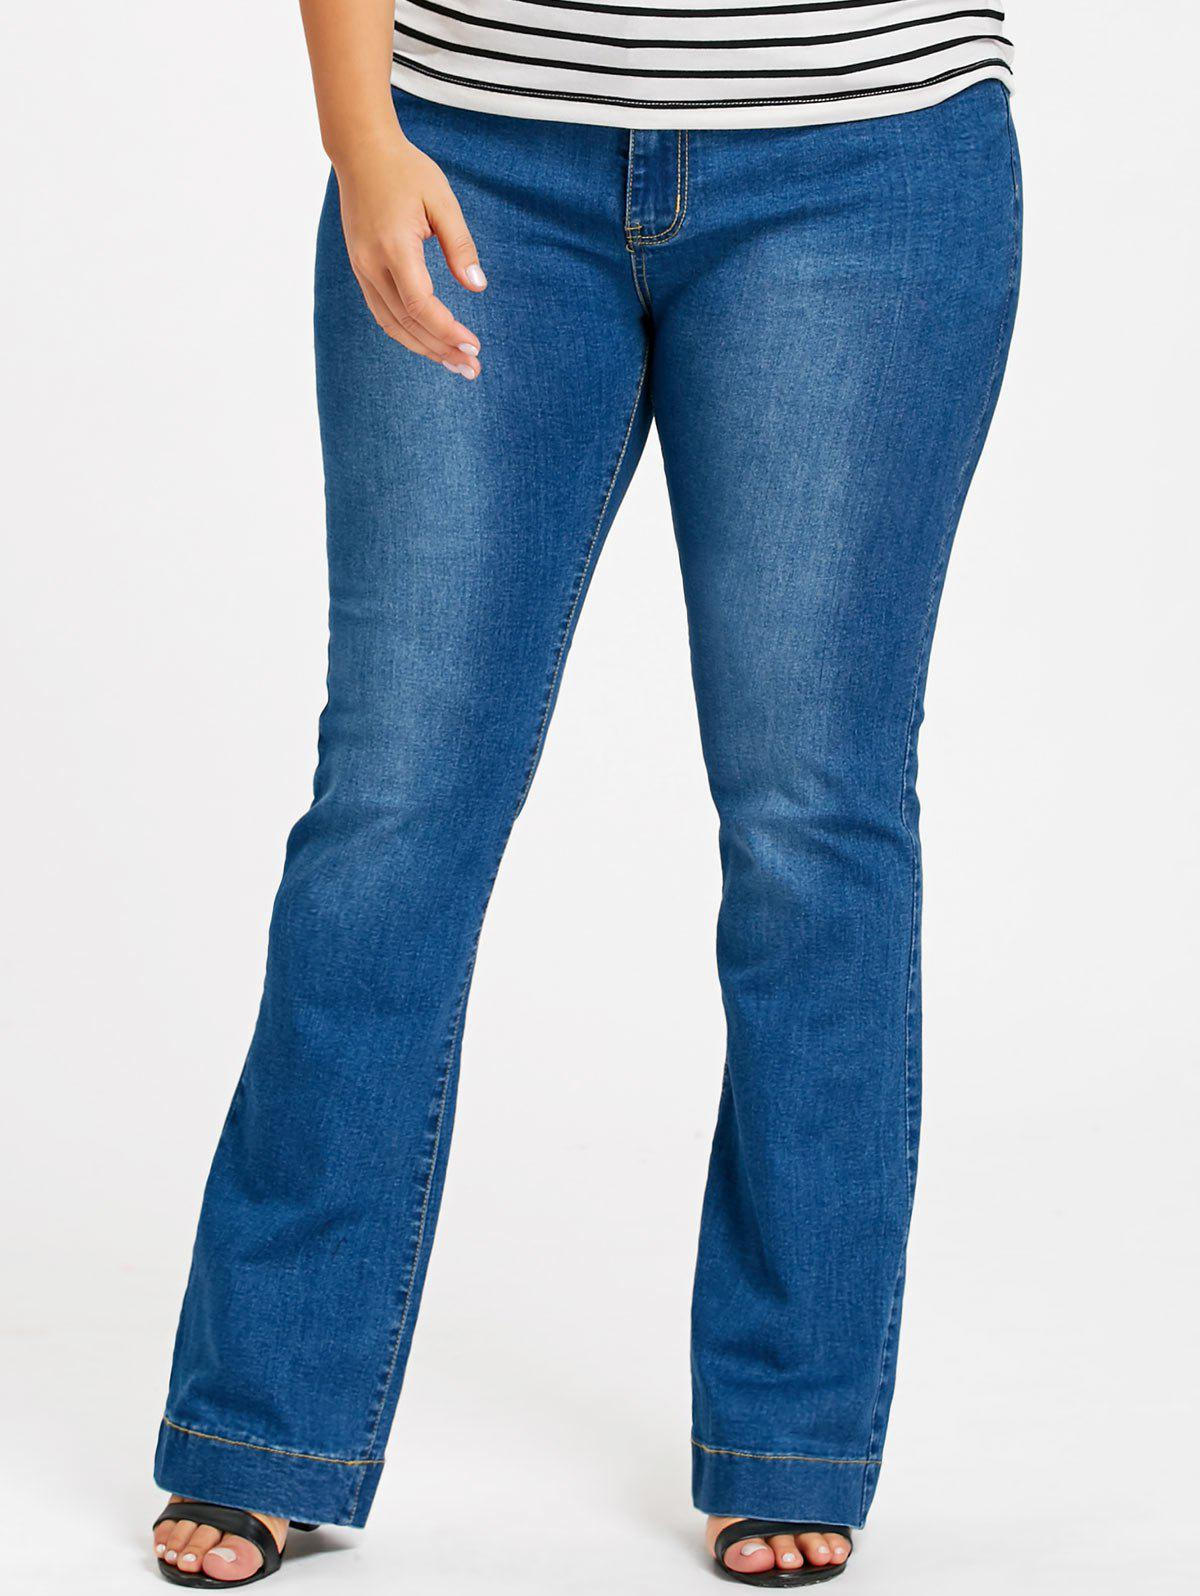 Plus Size Longline Flare JeansWOMEN<br><br>Size: 3XL; Color: DENIM BLUE; Style: Casual; Length: Overlength; Material: Polyester; Fit Type: Regular; Waist Type: Mid; Closure Type: Zipper Fly; Pattern Type: Solid; Pant Style: Flare Pants; Weight: 0.6400kg; Package Contents: 1 x Jeans;